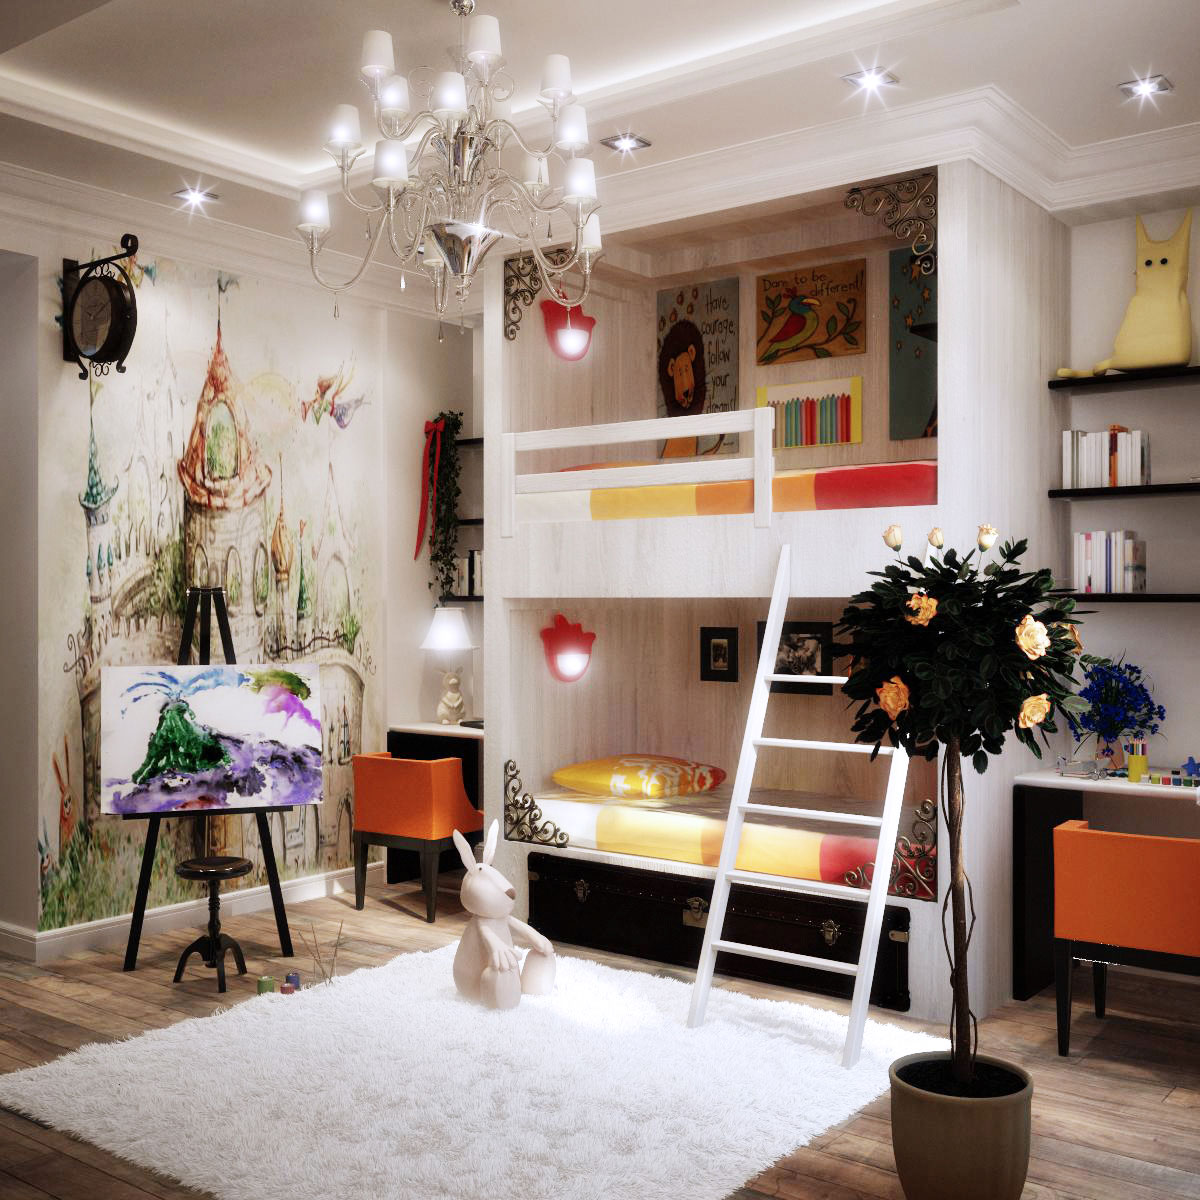 Kids Rooms Ideas 2015 Home Design Ideas